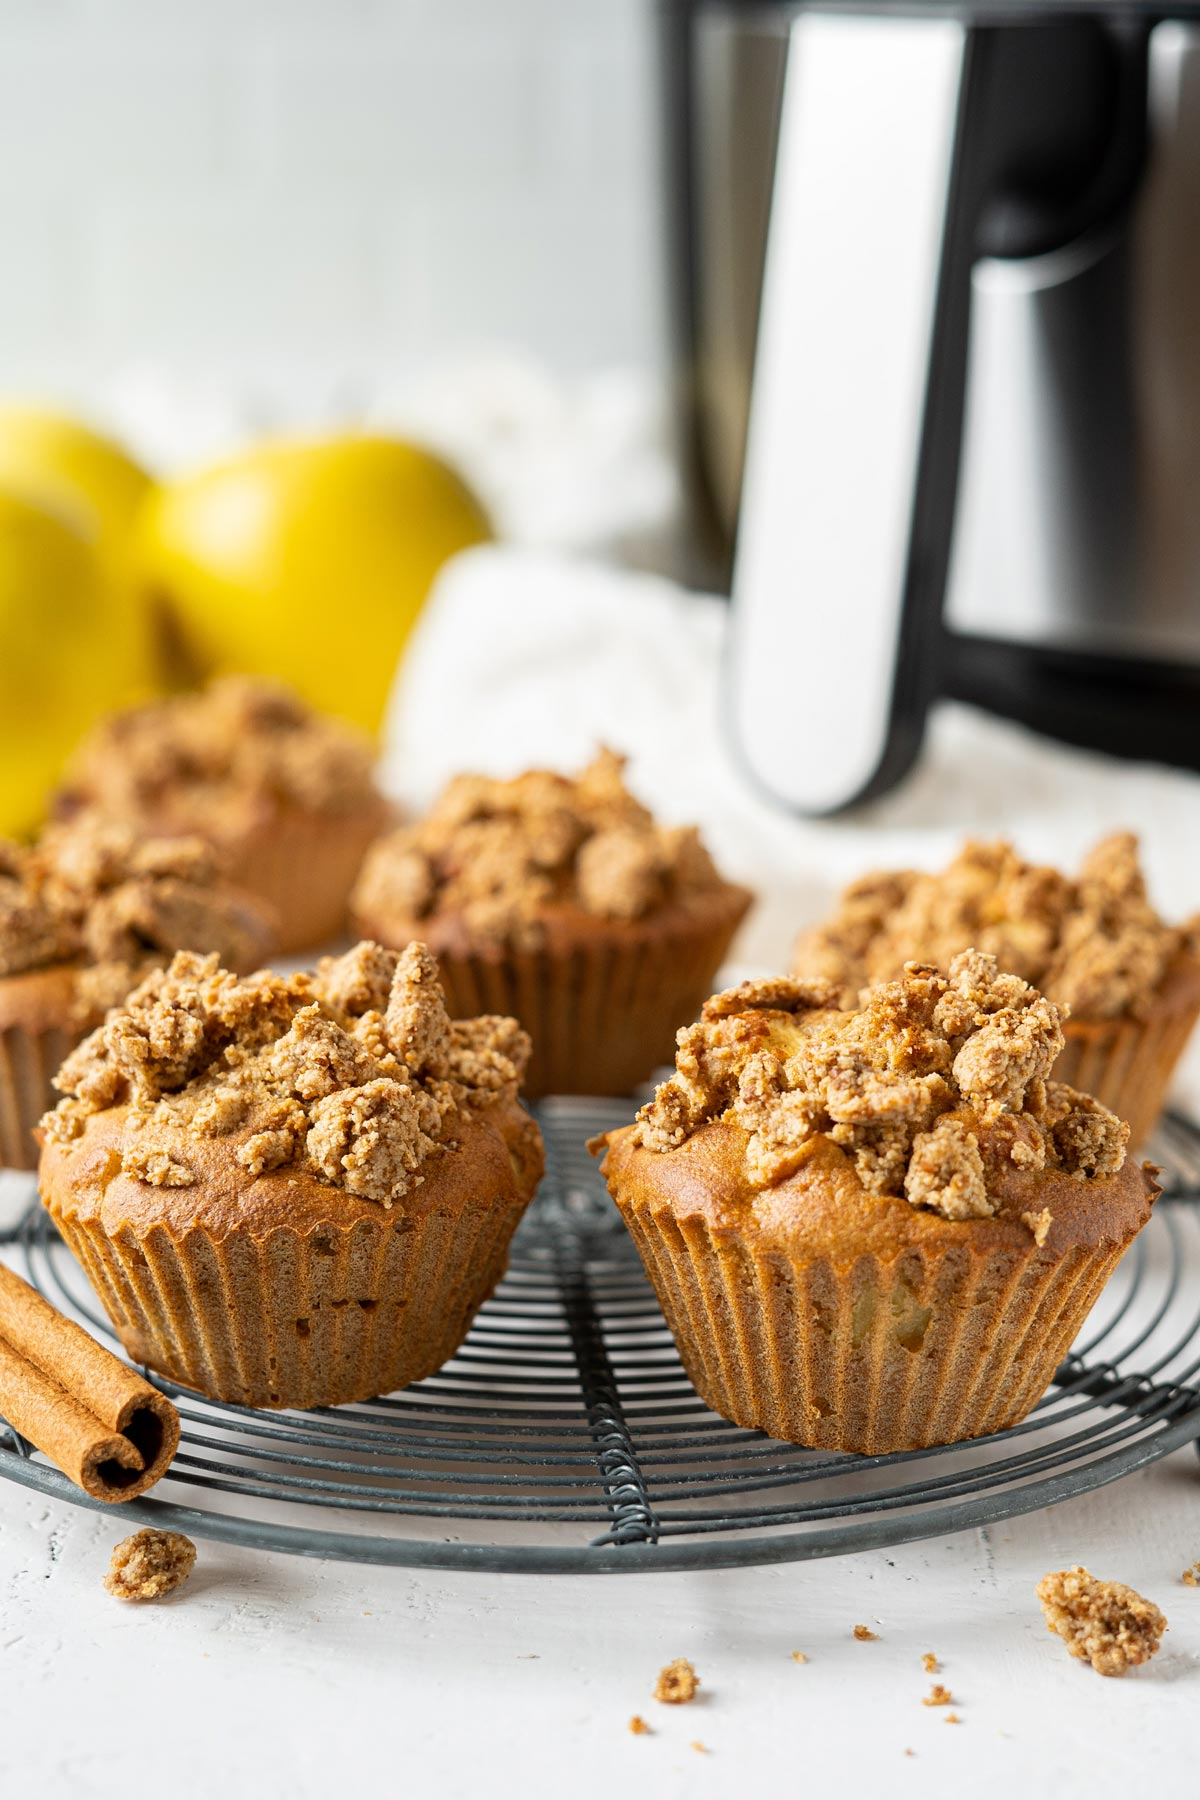 Air fryer apple crumble muffins on a rack